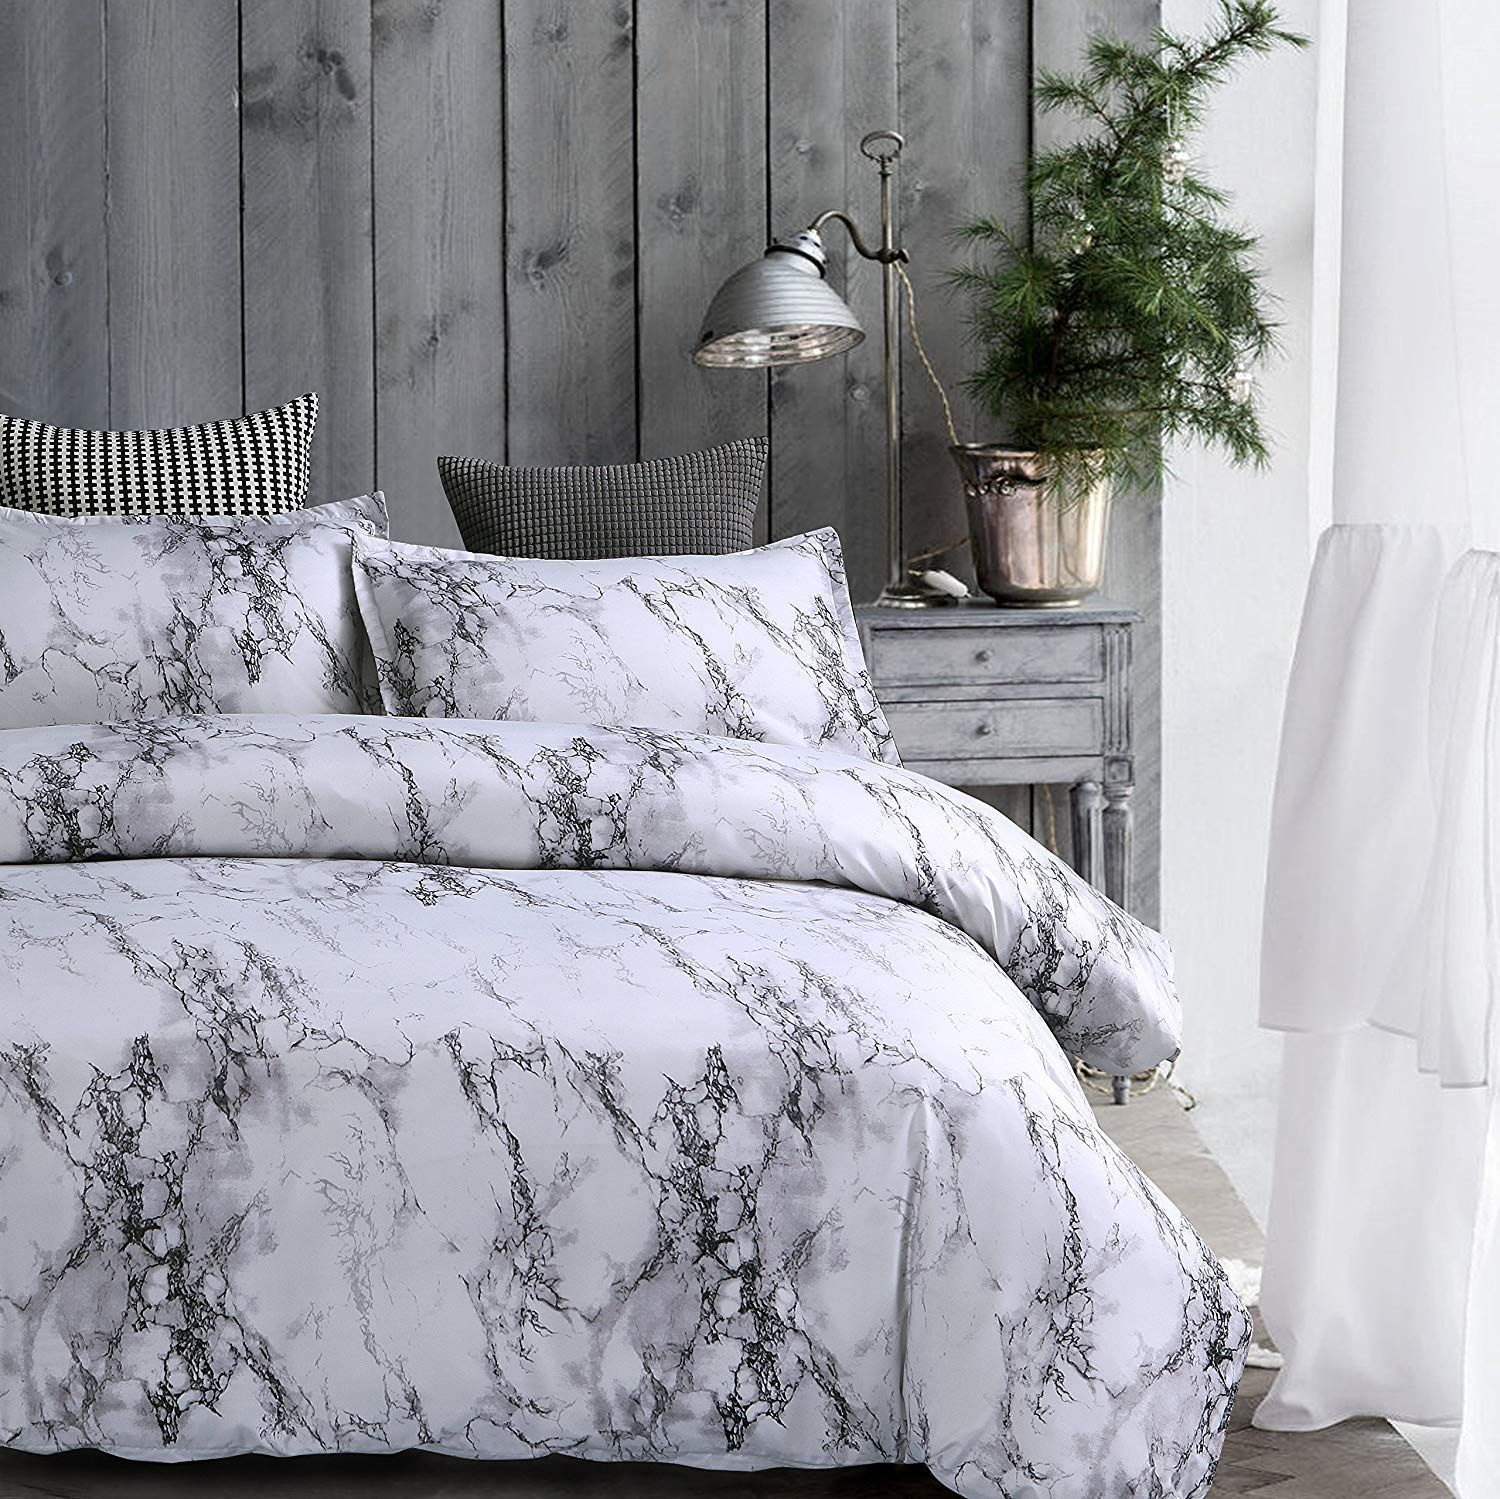 Amor Amore White Marble Comforter Gray Grey And White Comforter